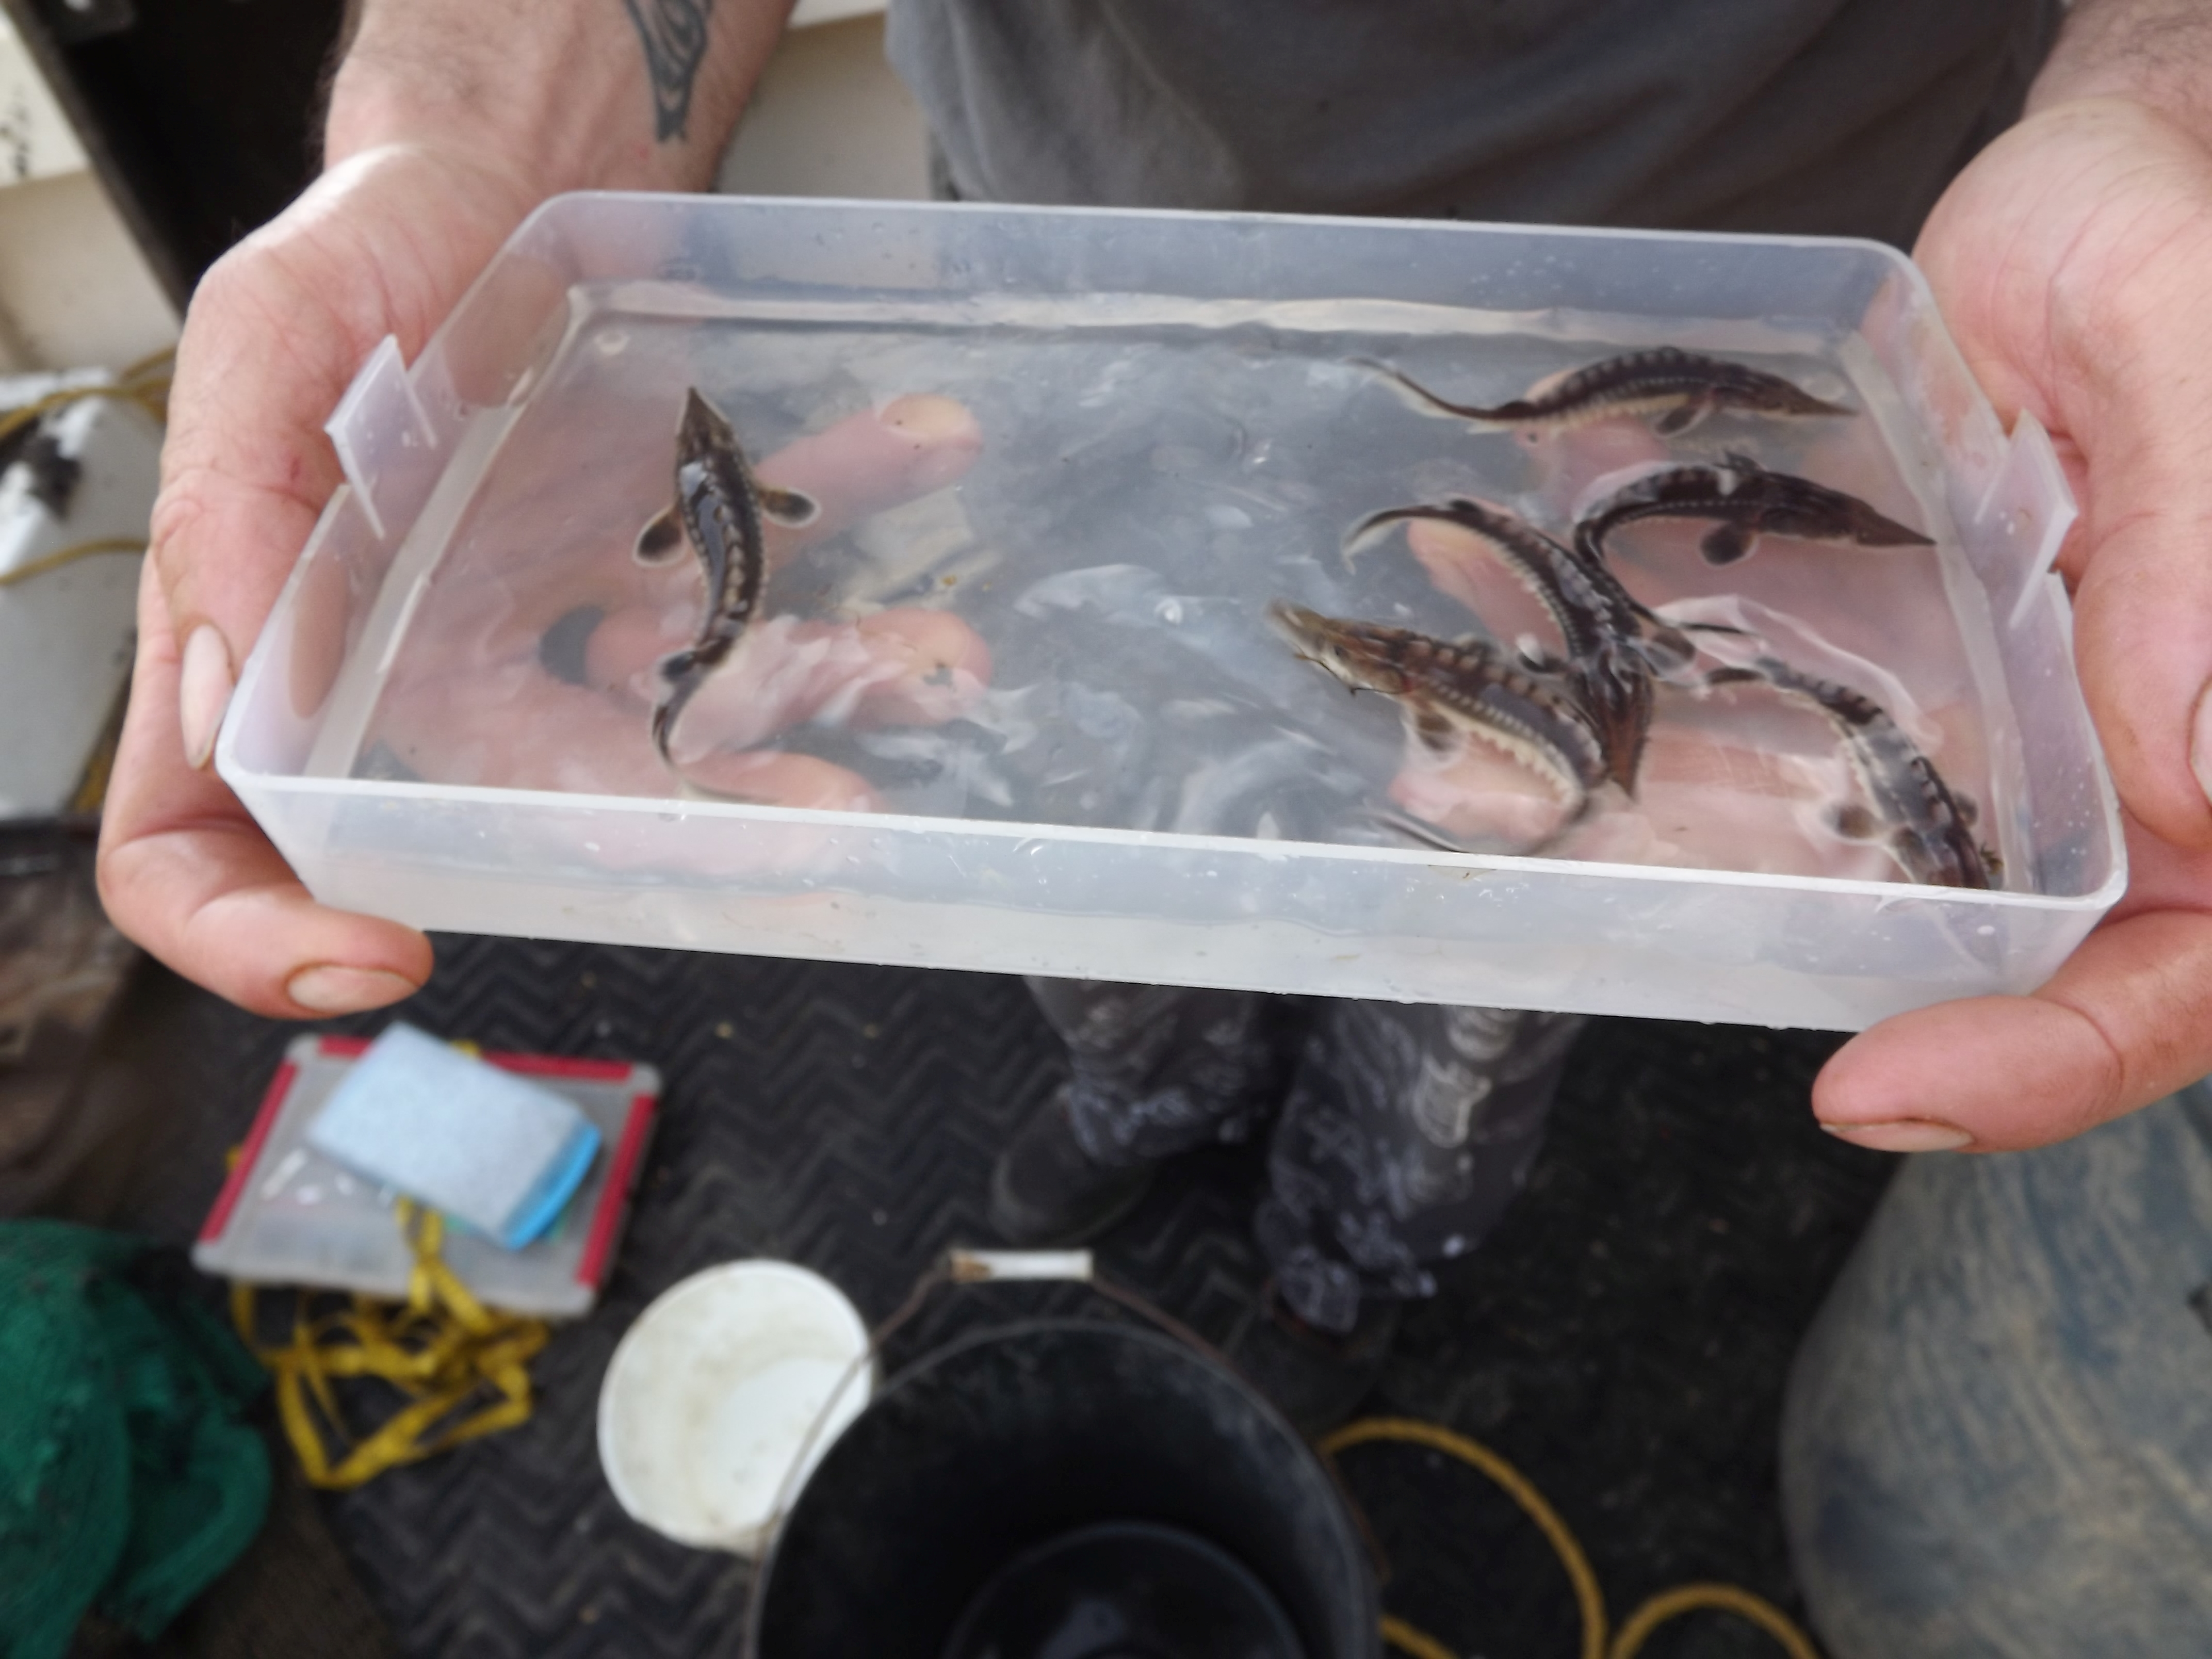 Baby sturgeon swimming in a container